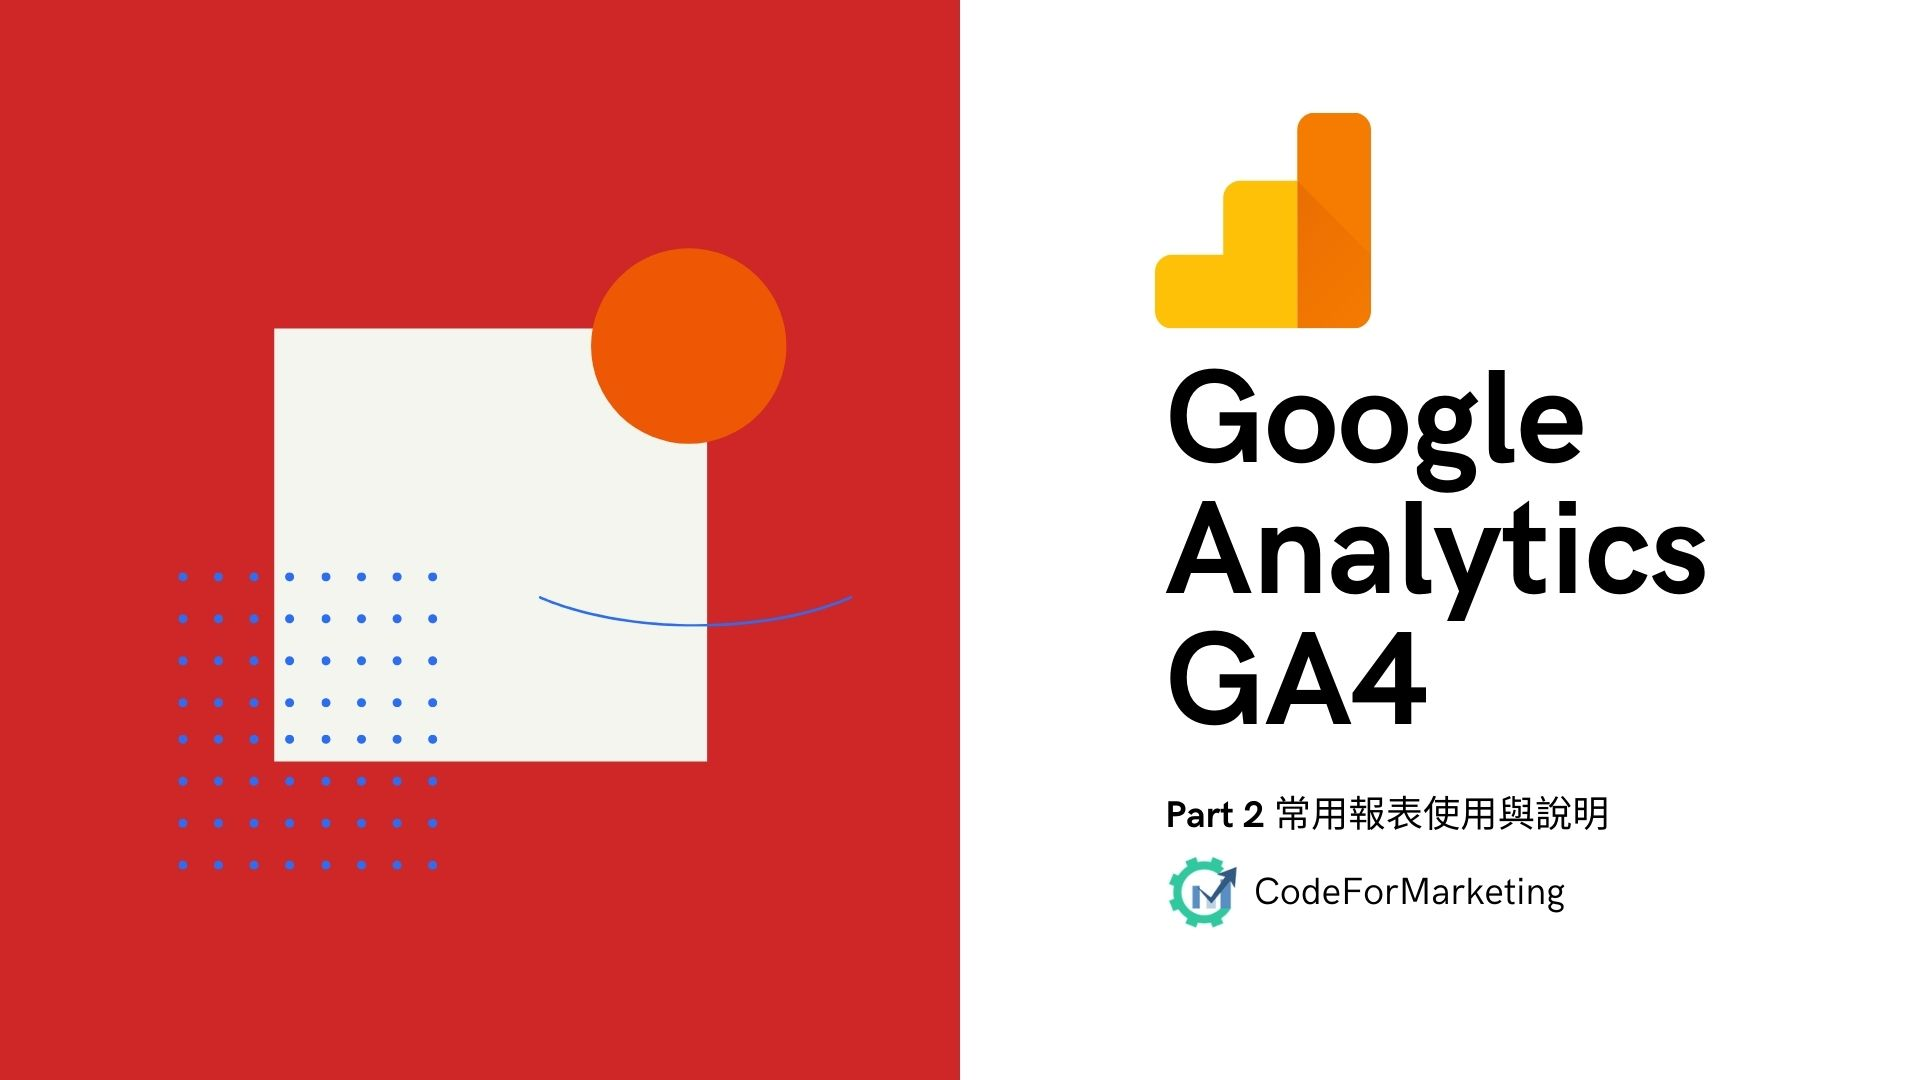 Protected: Google Analytics APP + Web Part 2 常用報表與使用說明